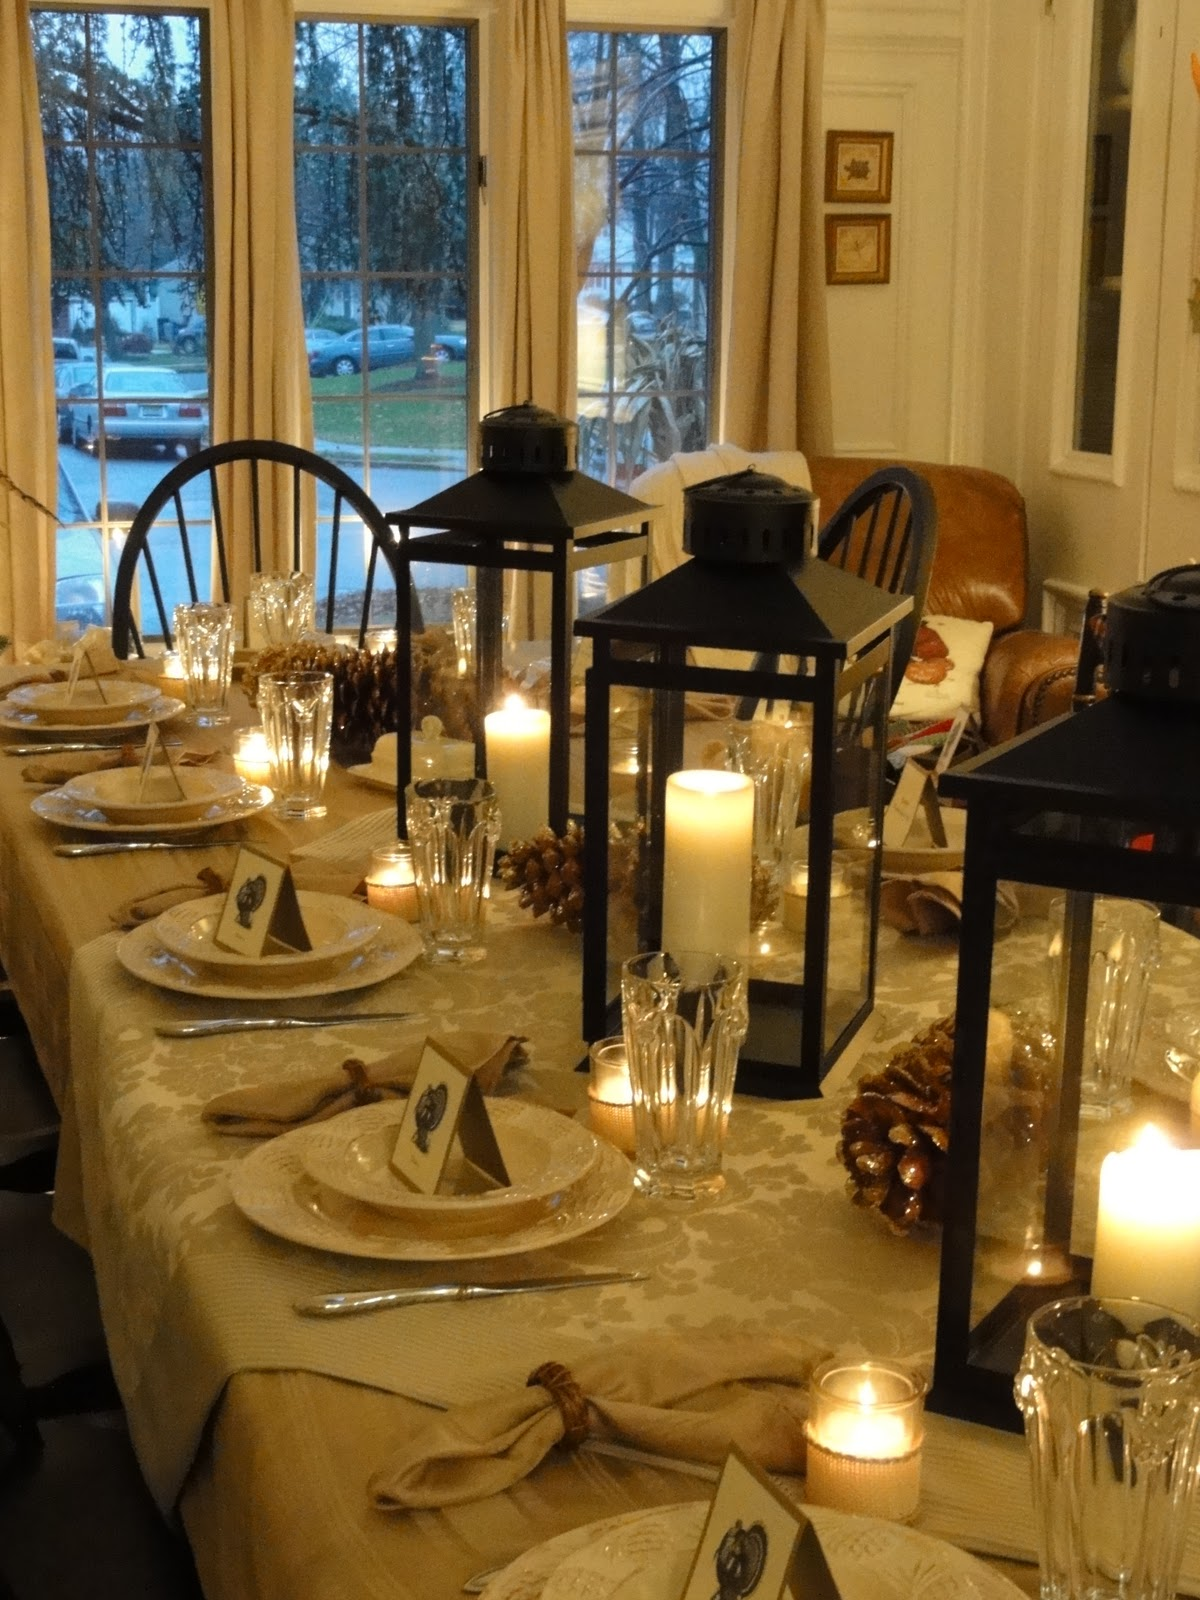 the table looked beautiful this year glowing in shades of cream tans